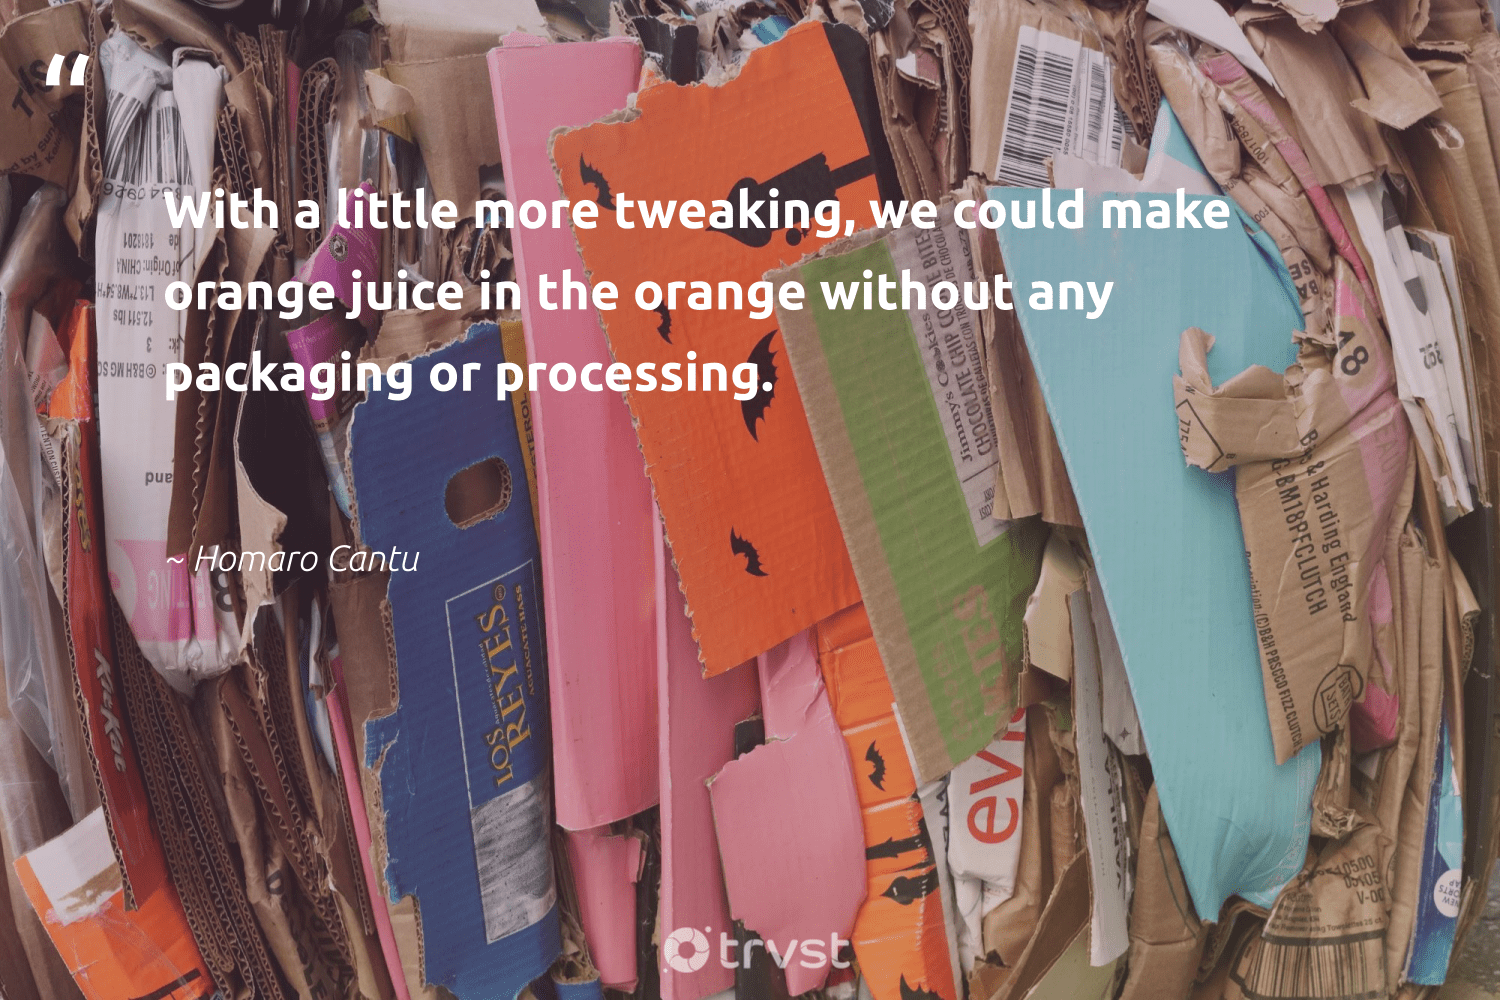 """""""With a little more tweaking, we could make orange juice in the orange without any packaging or processing.""""  - Homaro Cantu #trvst #quotes #wastefree #collectiveaction #noplanetb #thinkgreen #dosomething #ecoconscious #changeahabit #dotherightthing #dogood #gogreen"""